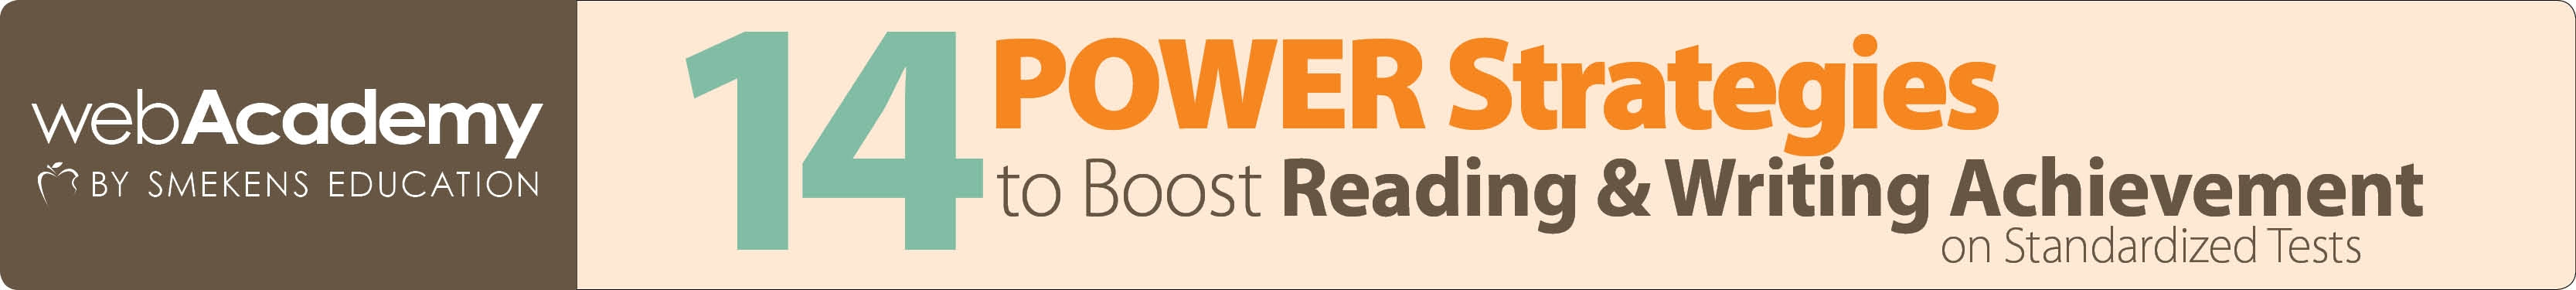 14 Power Strategies to Boost Reading & Writing Achievement on Standardized Tests